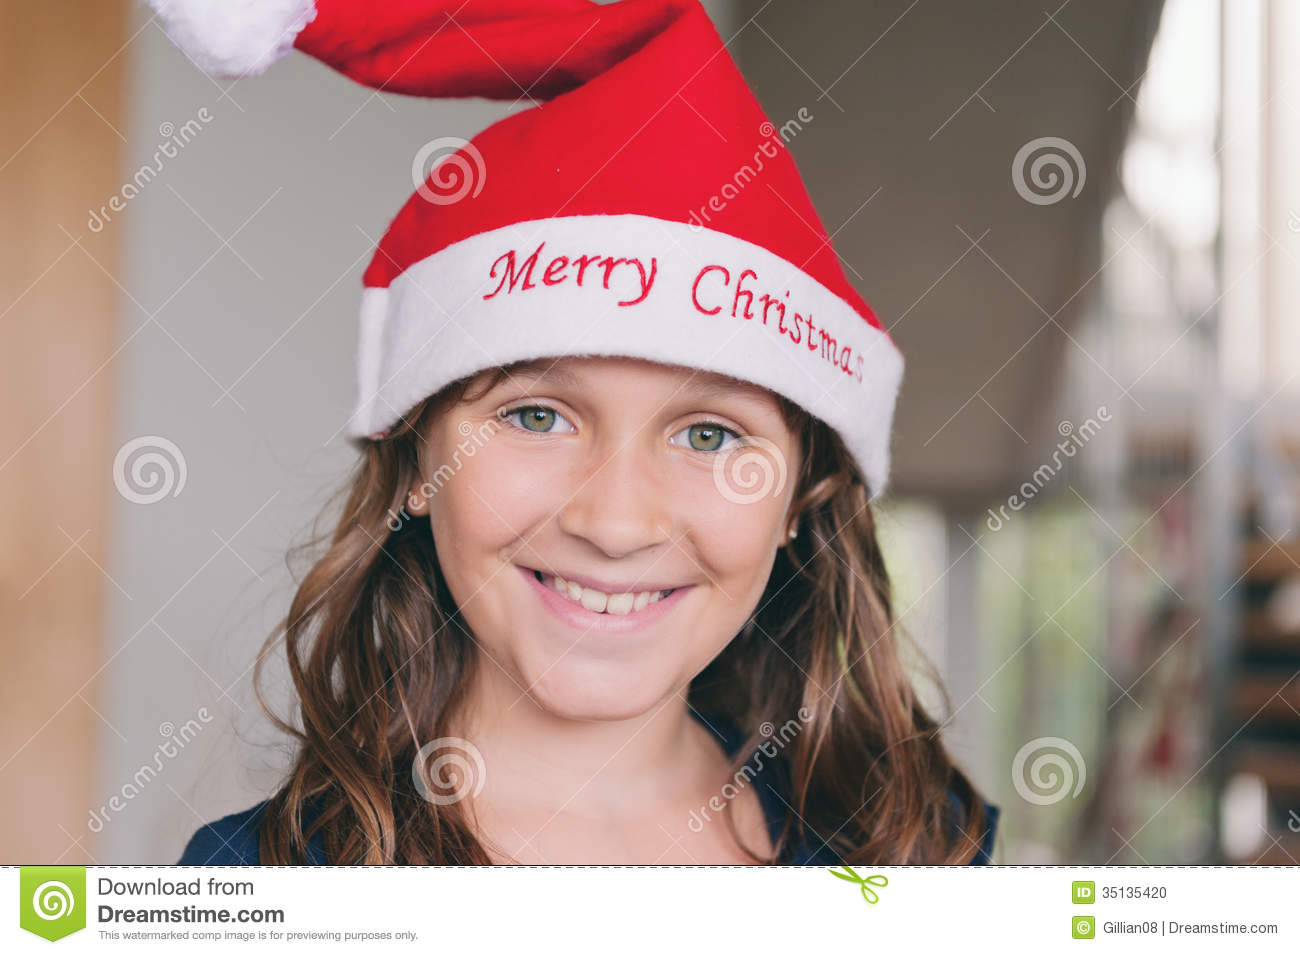 Girl wearing red hat with merry christmas embroidered across the brim